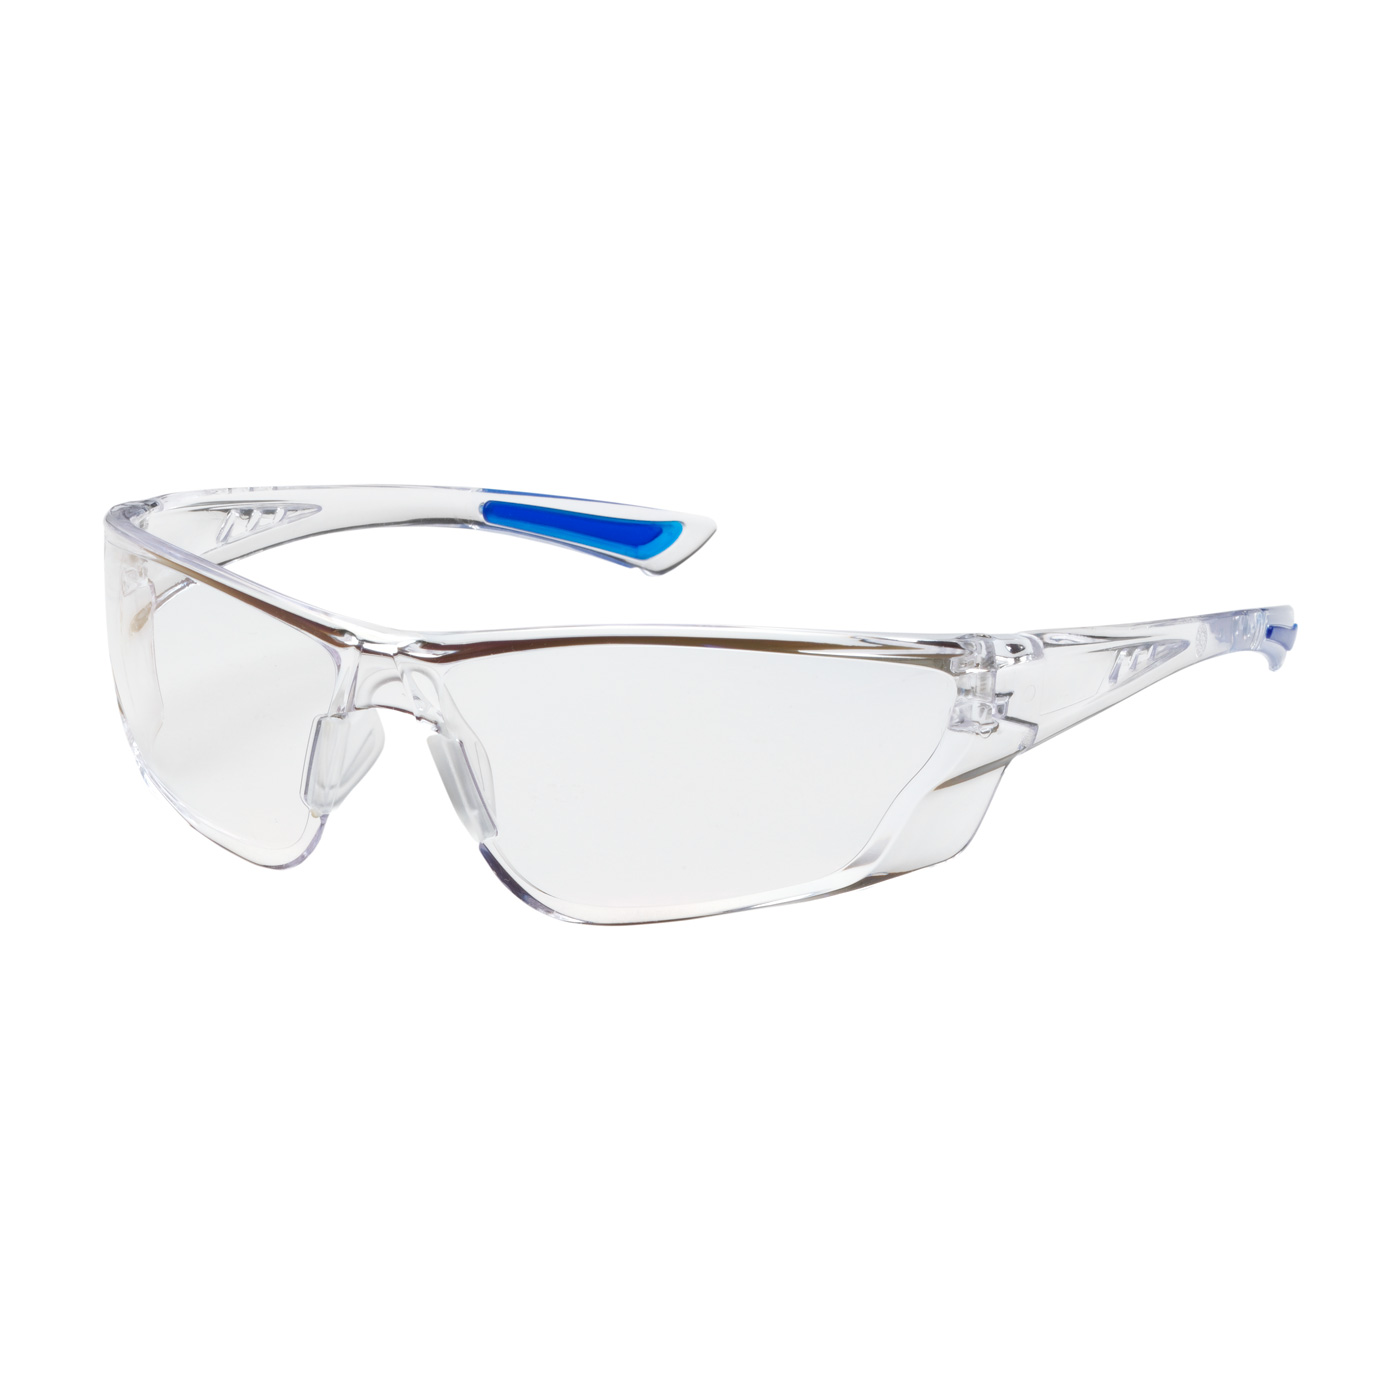 PIPR 250-32-0520 Rimless Safety Glasses with Clear Temple, Clear Lens and Anti-Scratch / FogLess® 3Sixty™ Coating